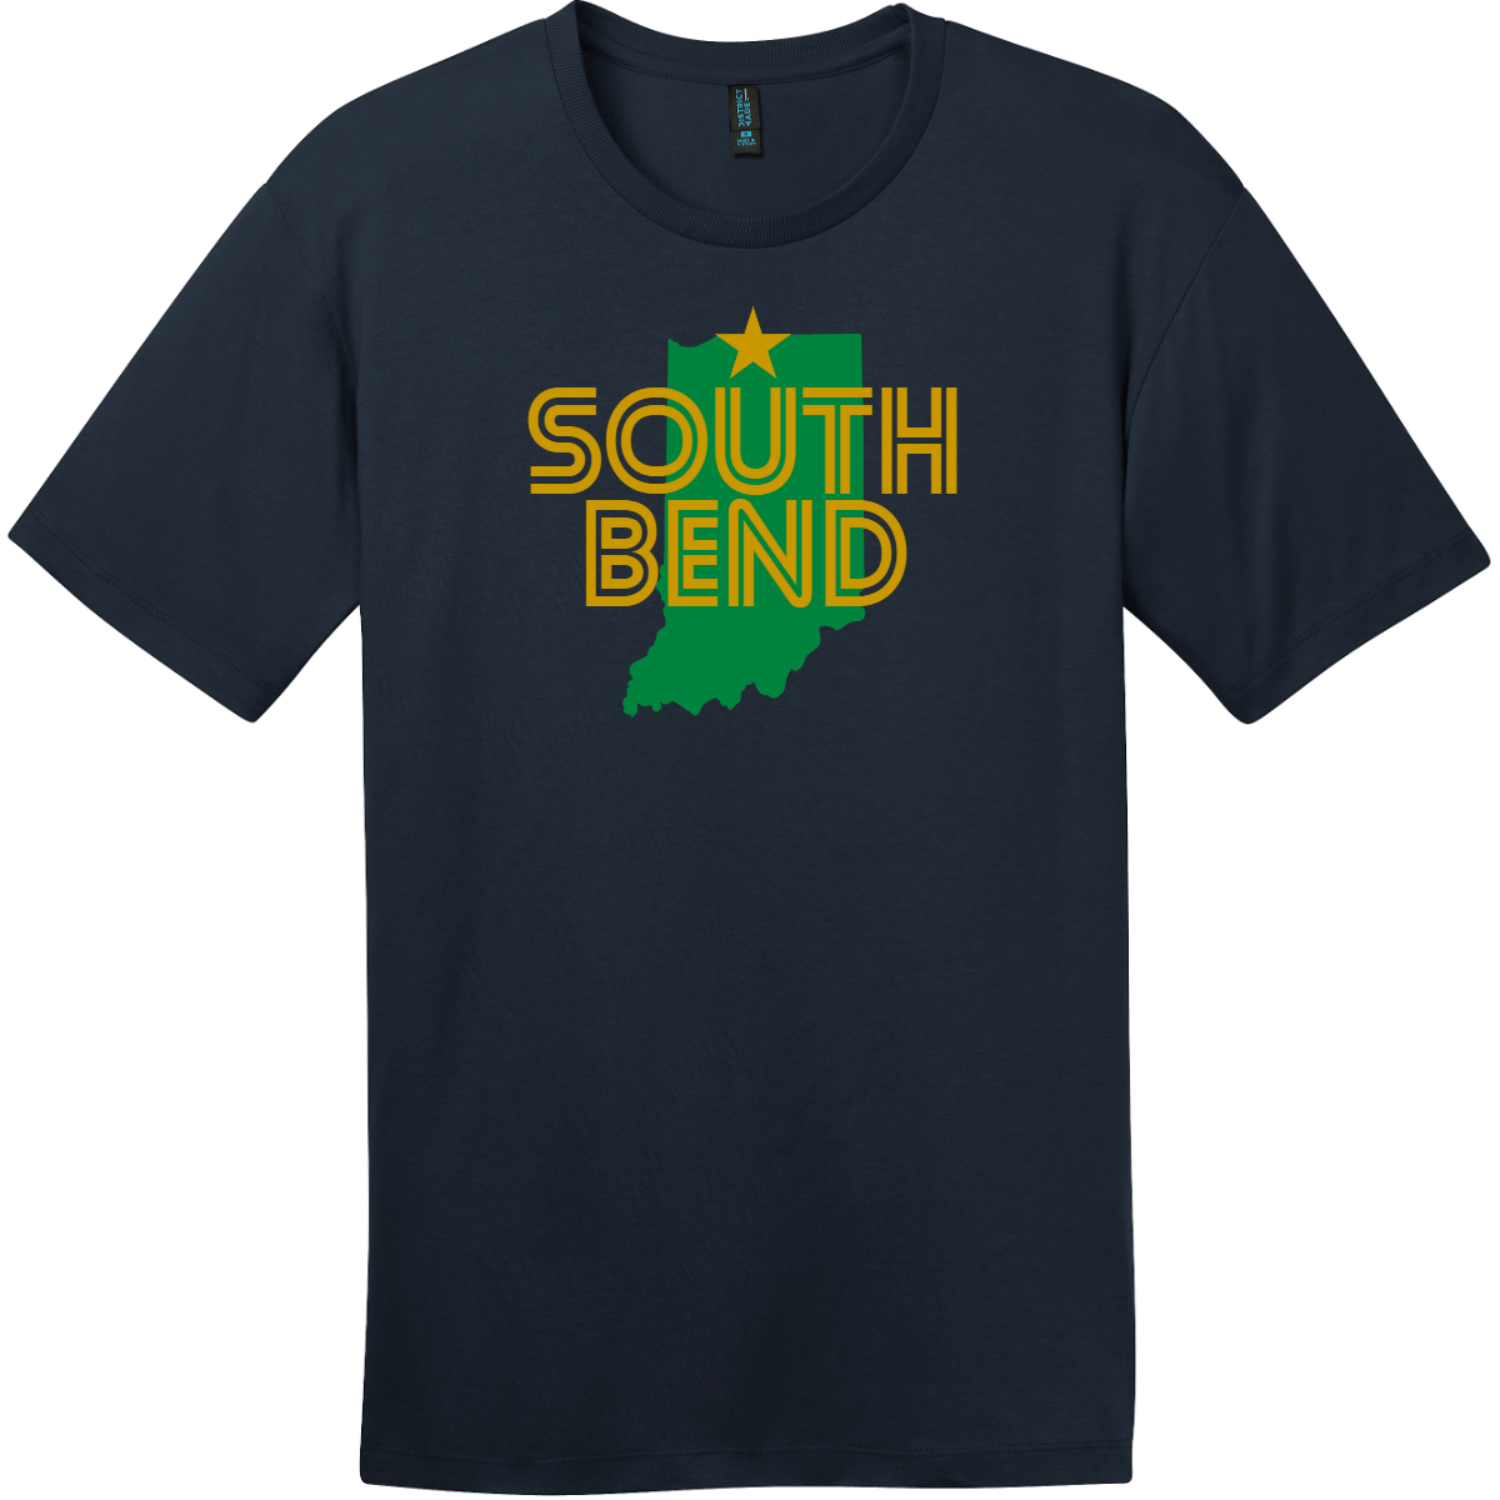 South Bend Indiana T-Shirt New Navy District Perfect Weight Tee DT104